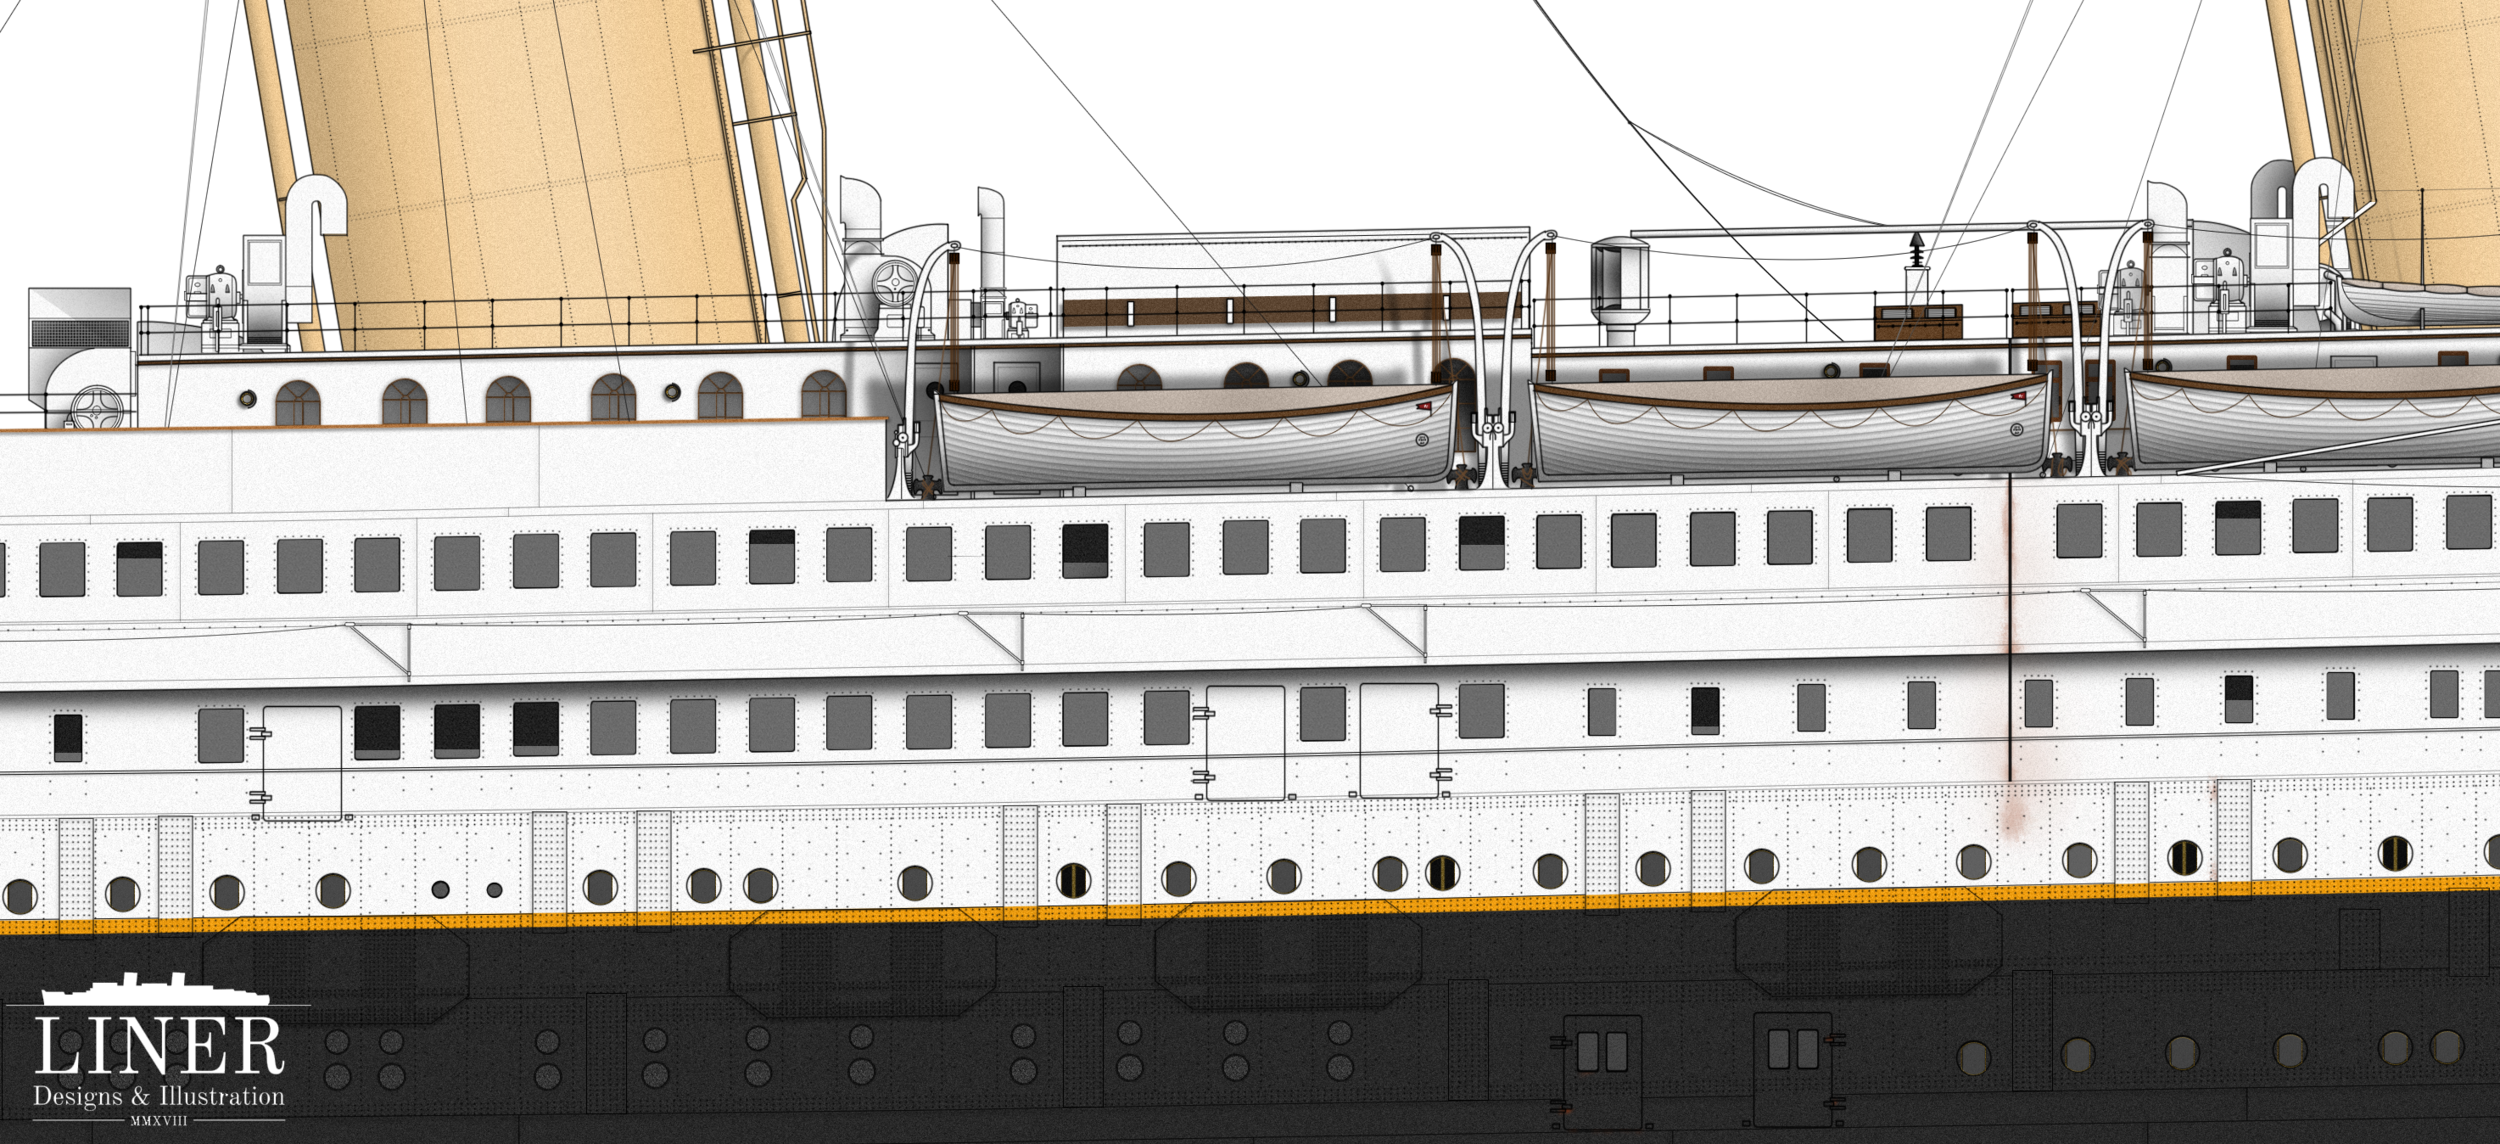 Detail shot of Liner Designs' RMS Titanic drawing.  Learn More